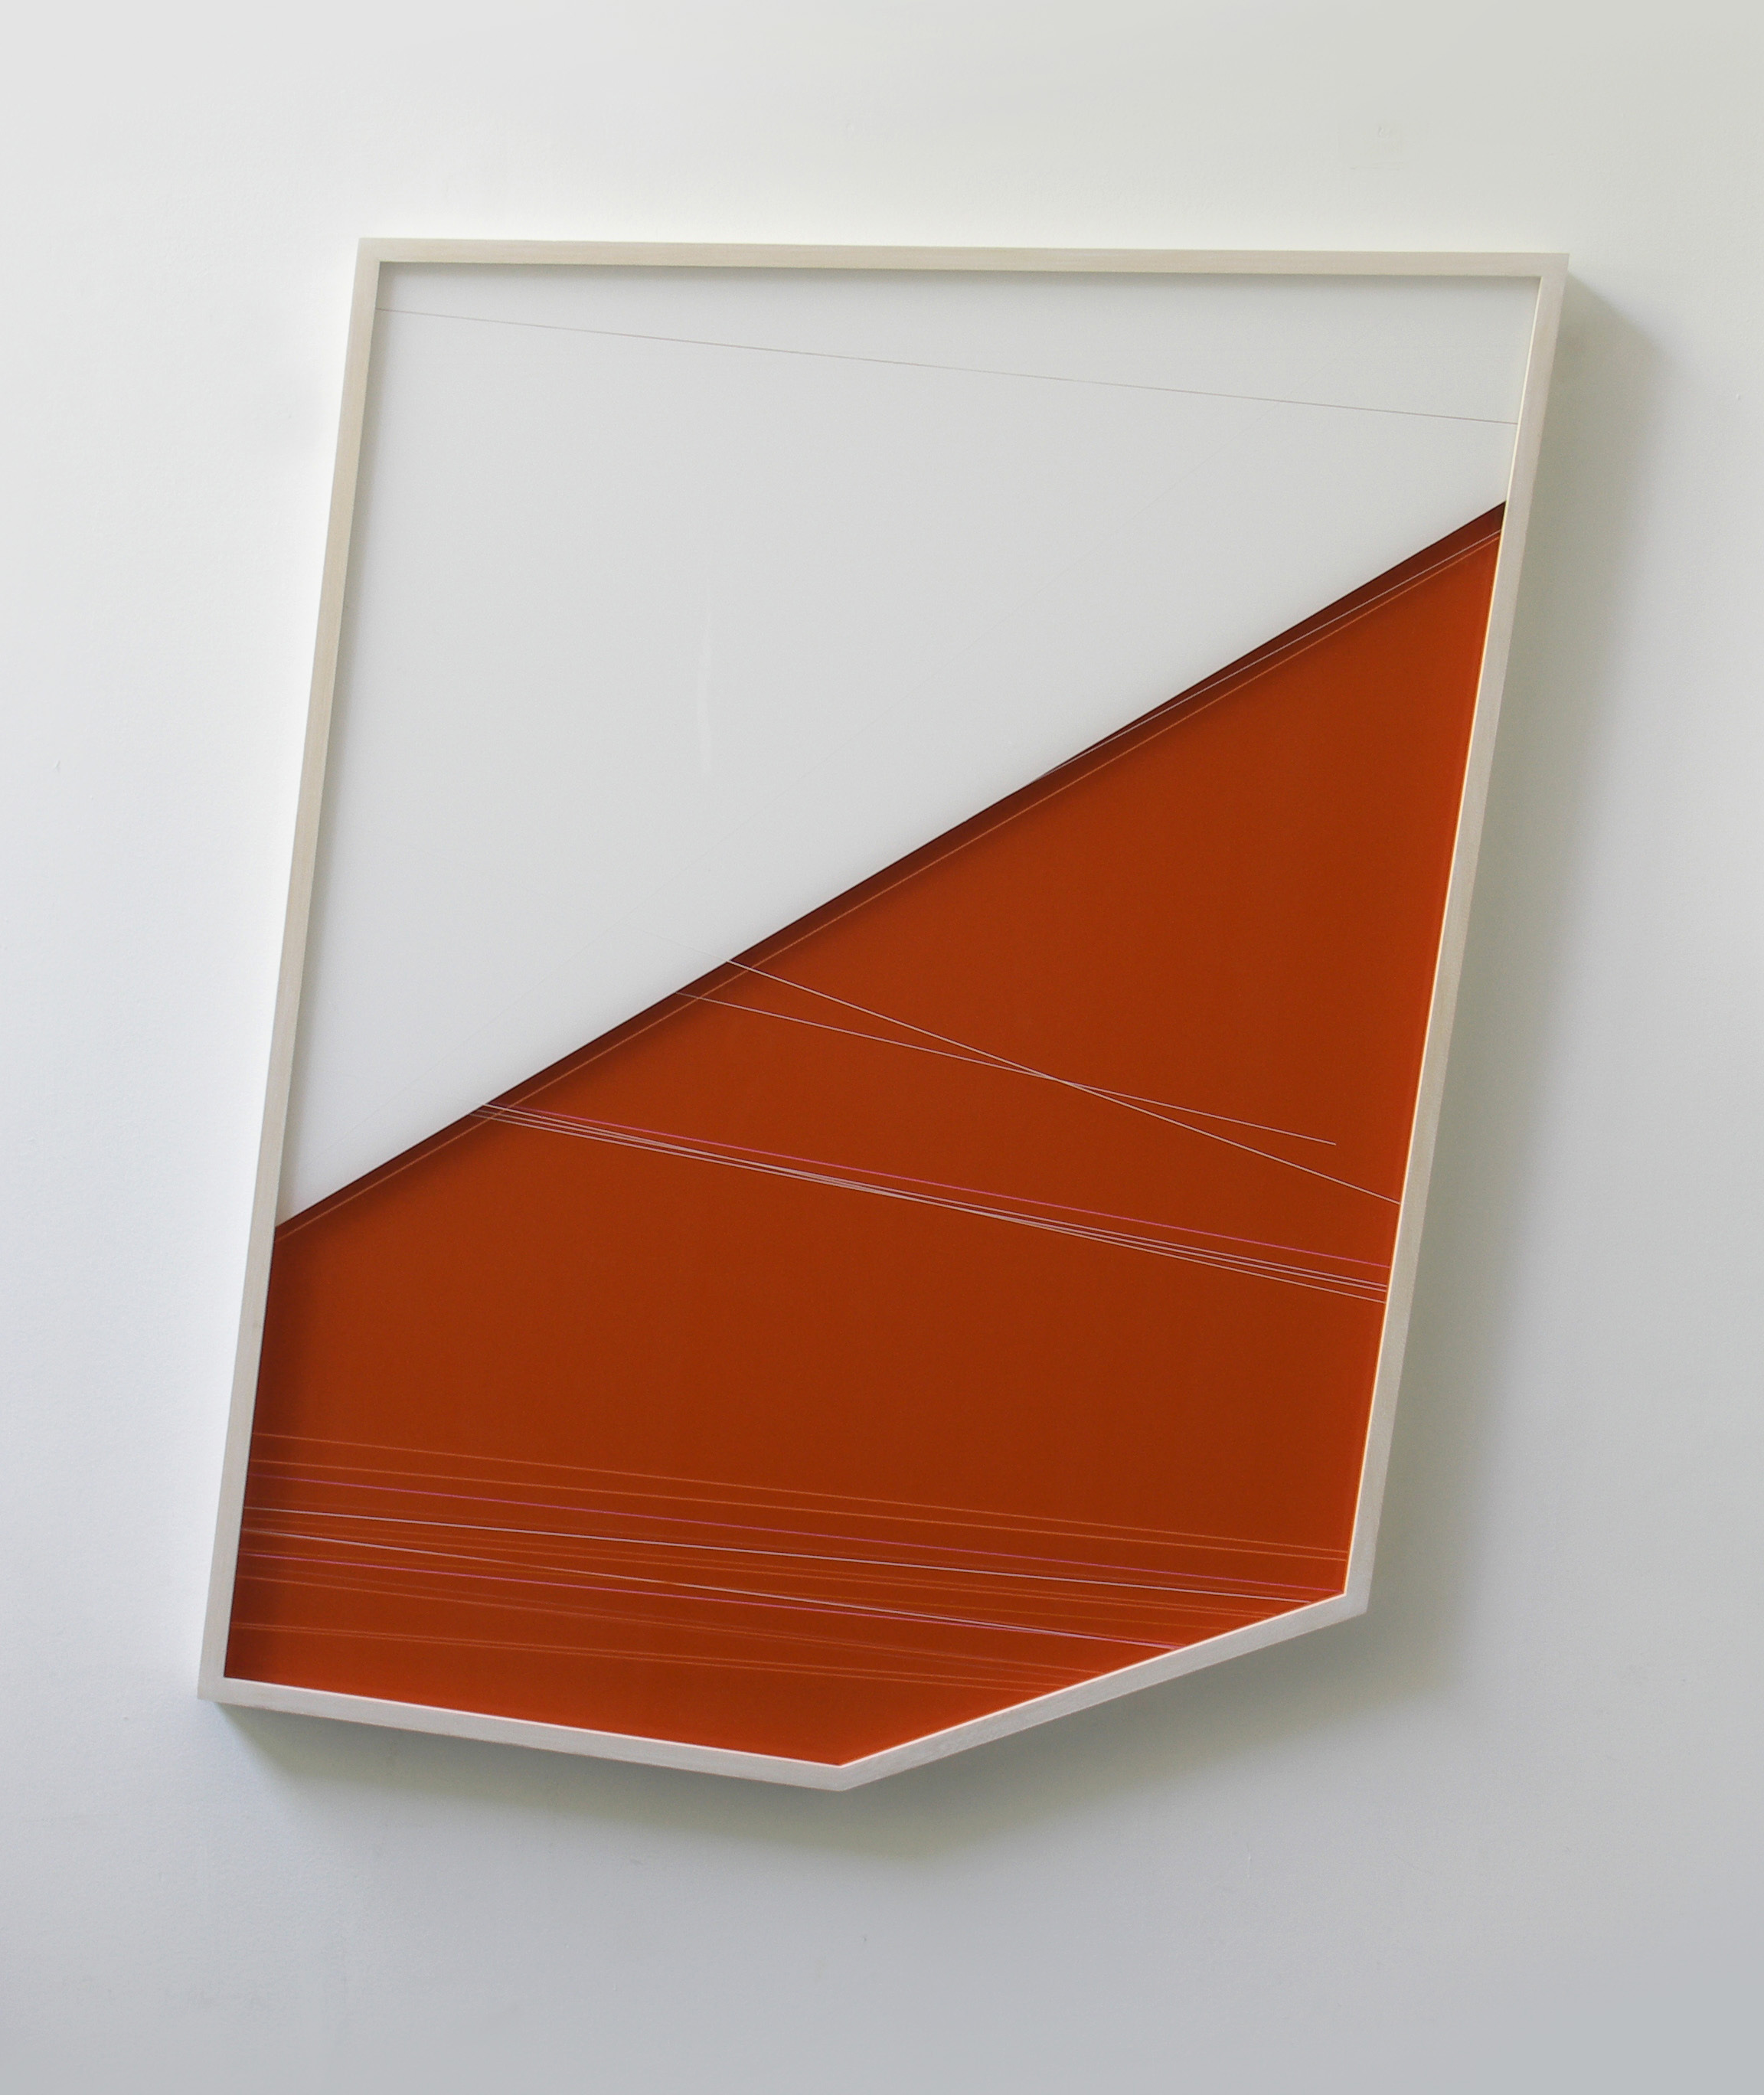 'Untitled', 2019, 96,5 X 85 X 4 Cm, Mixed Technique Under Plexiglass + On Aluminum